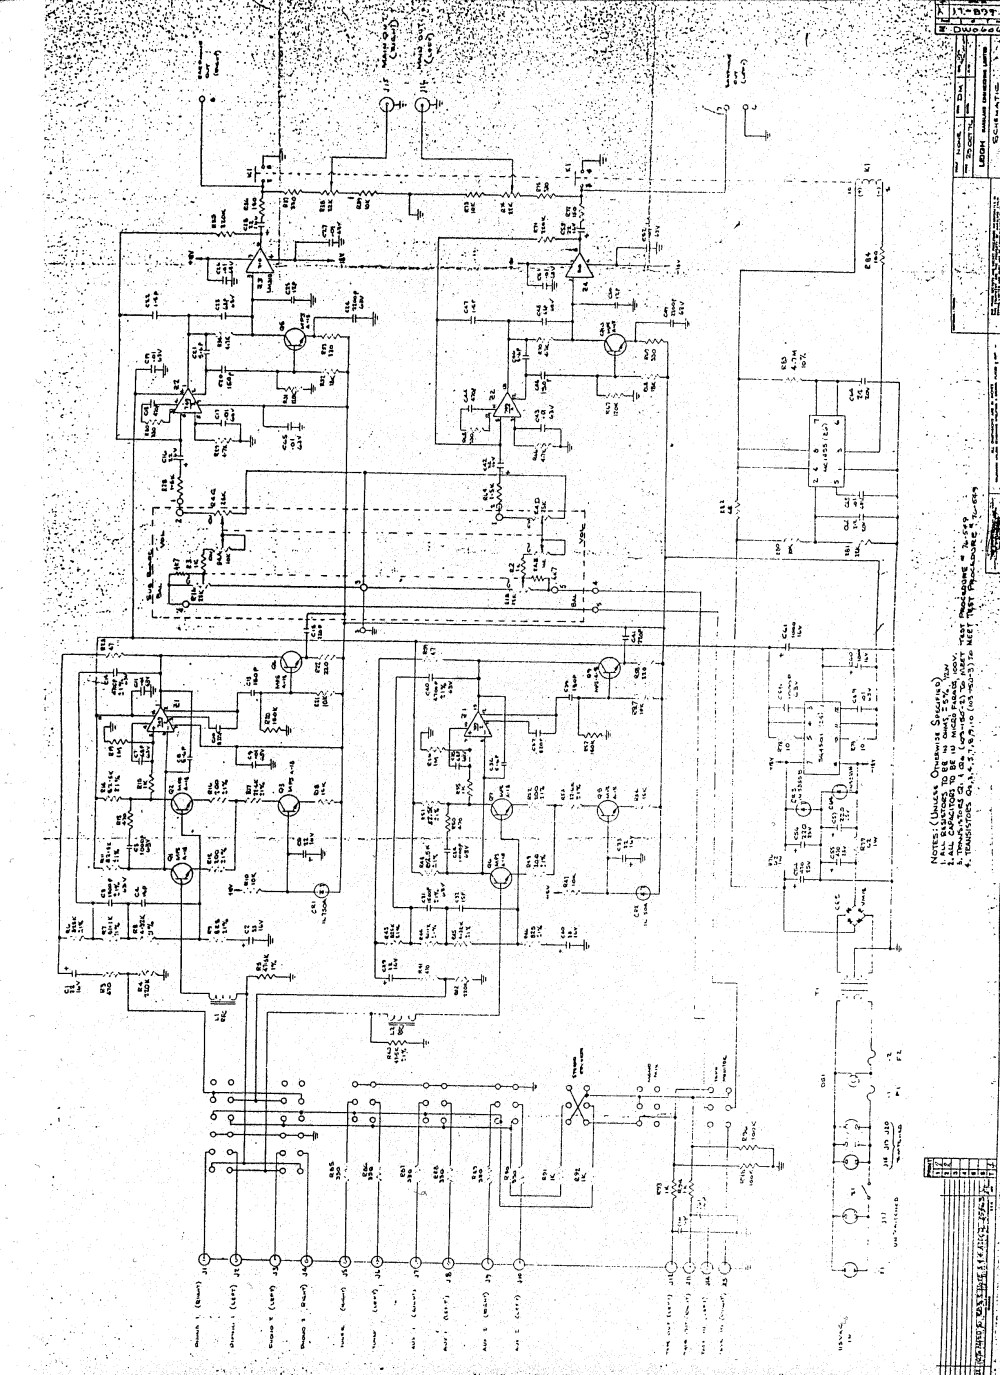 medium resolution of circuit boards by date of manufacture